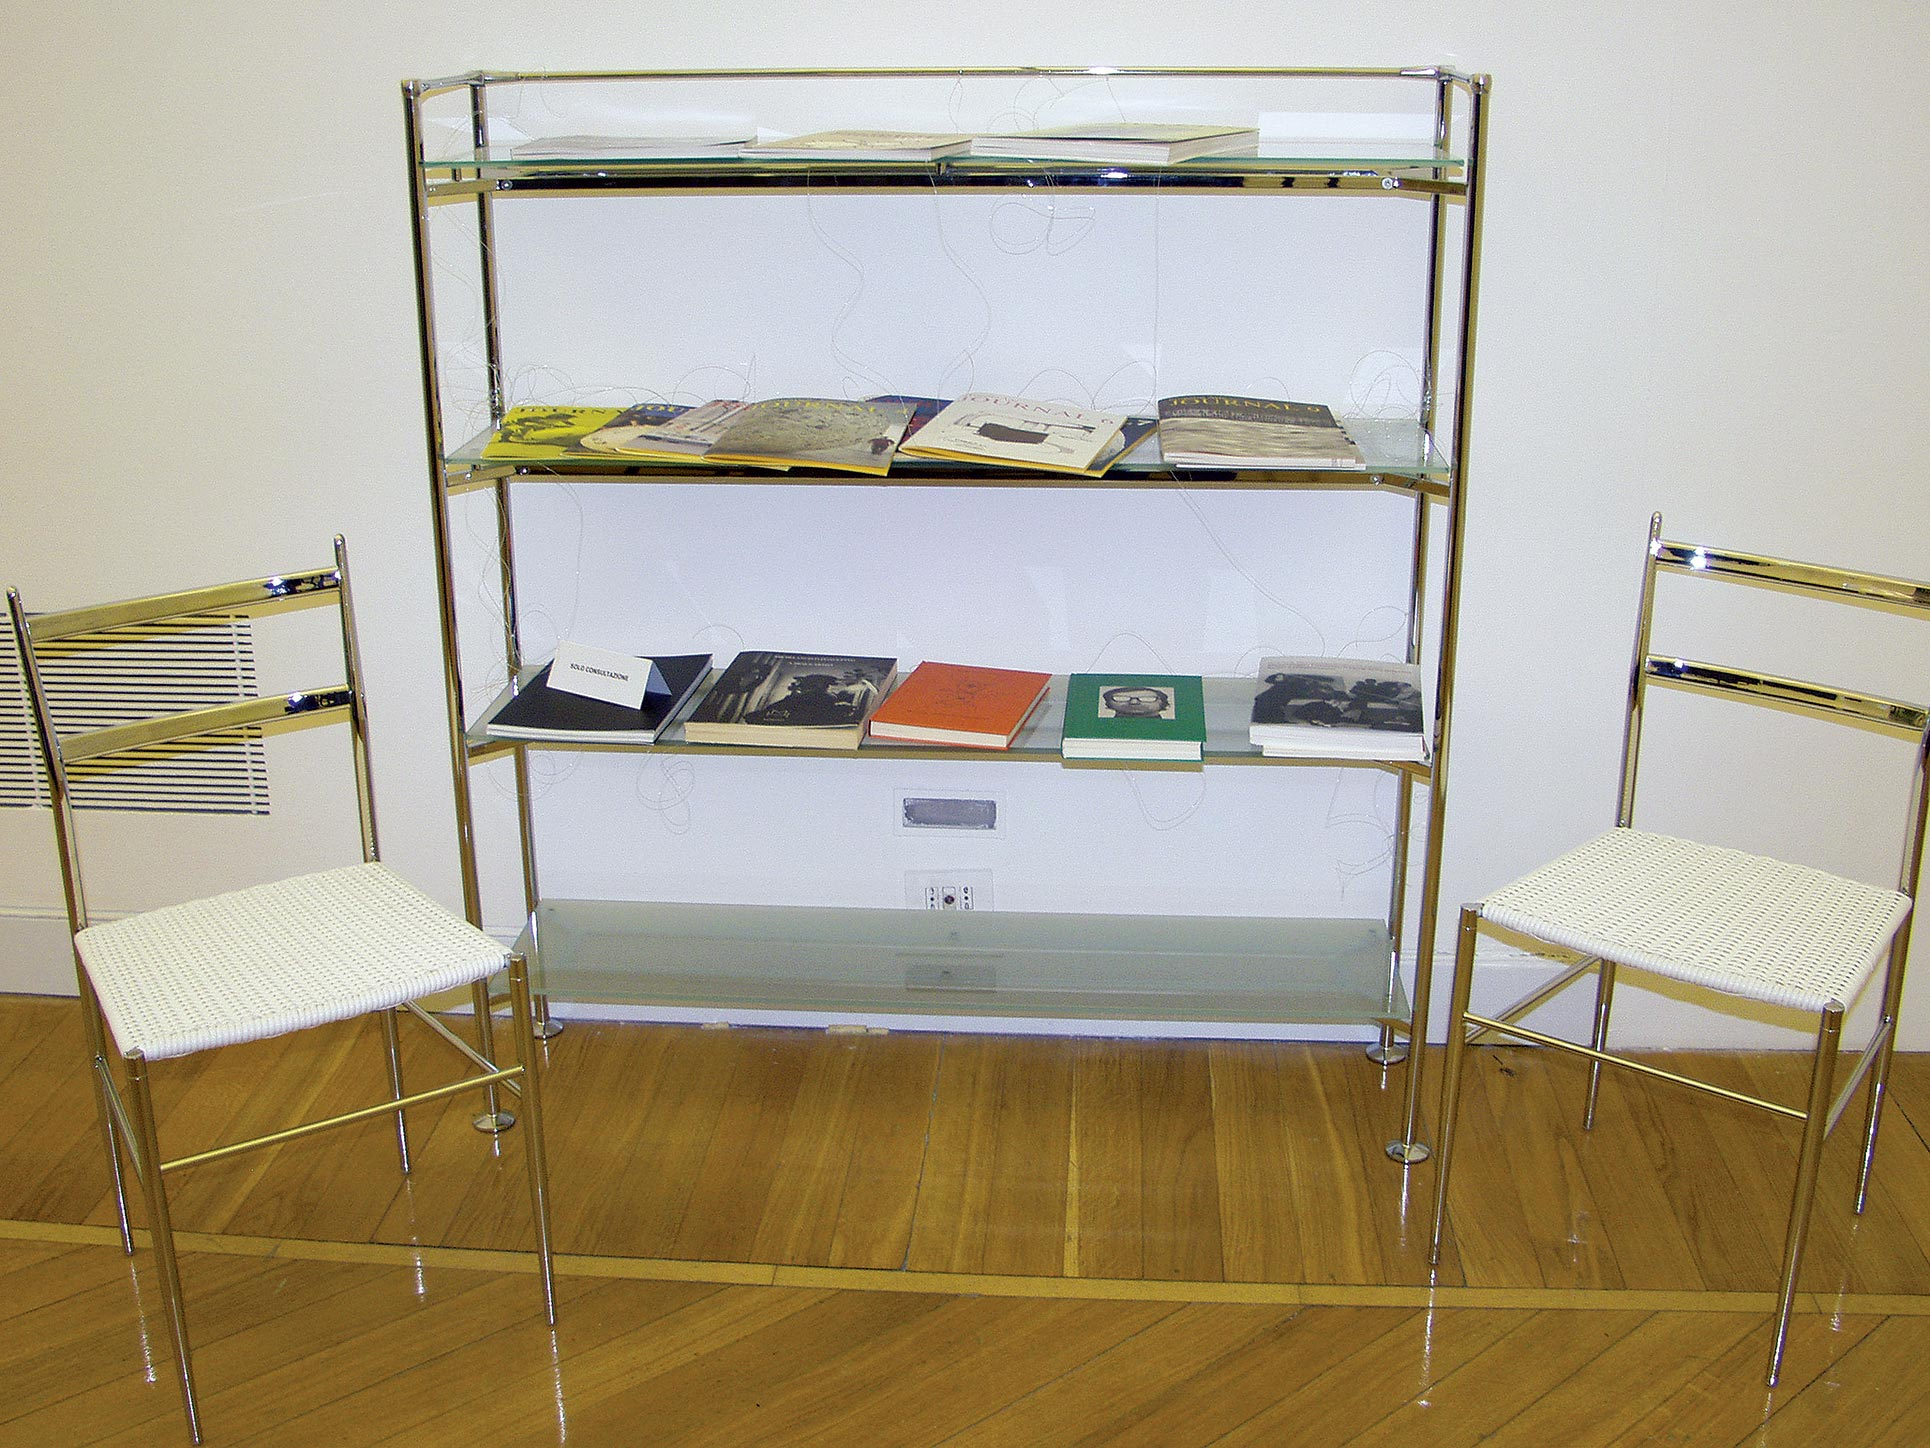 Michelangelo Pistoletto, catalogues